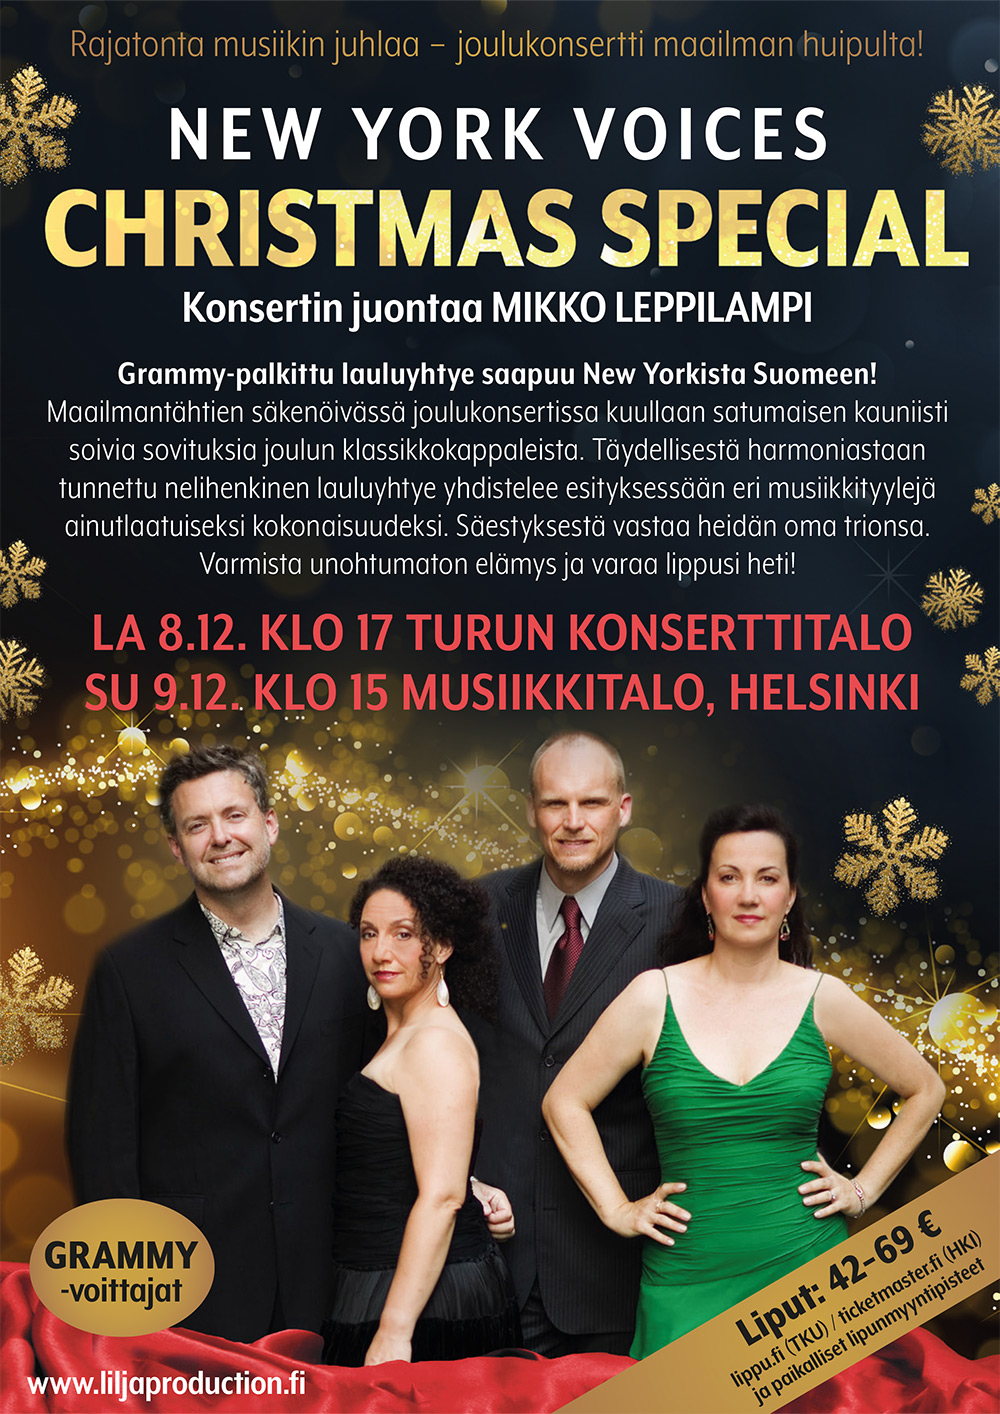 New York Voices - joulukonsertin mainos 2018